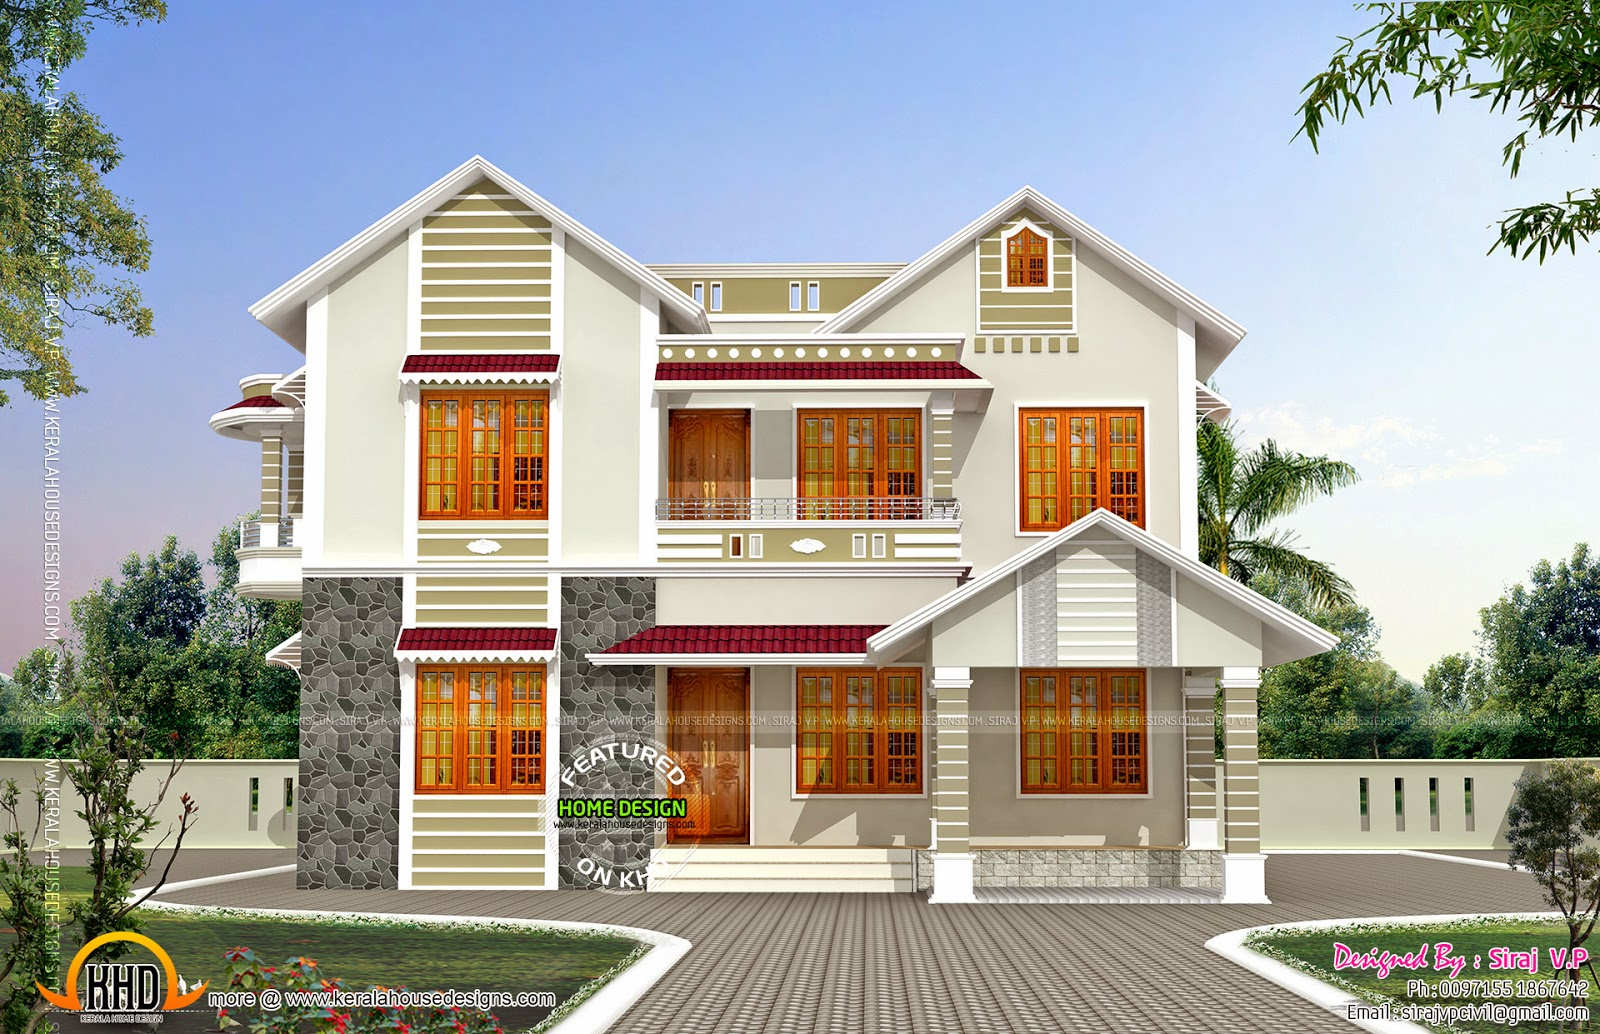 Image gallery home design front view for Designed home plans